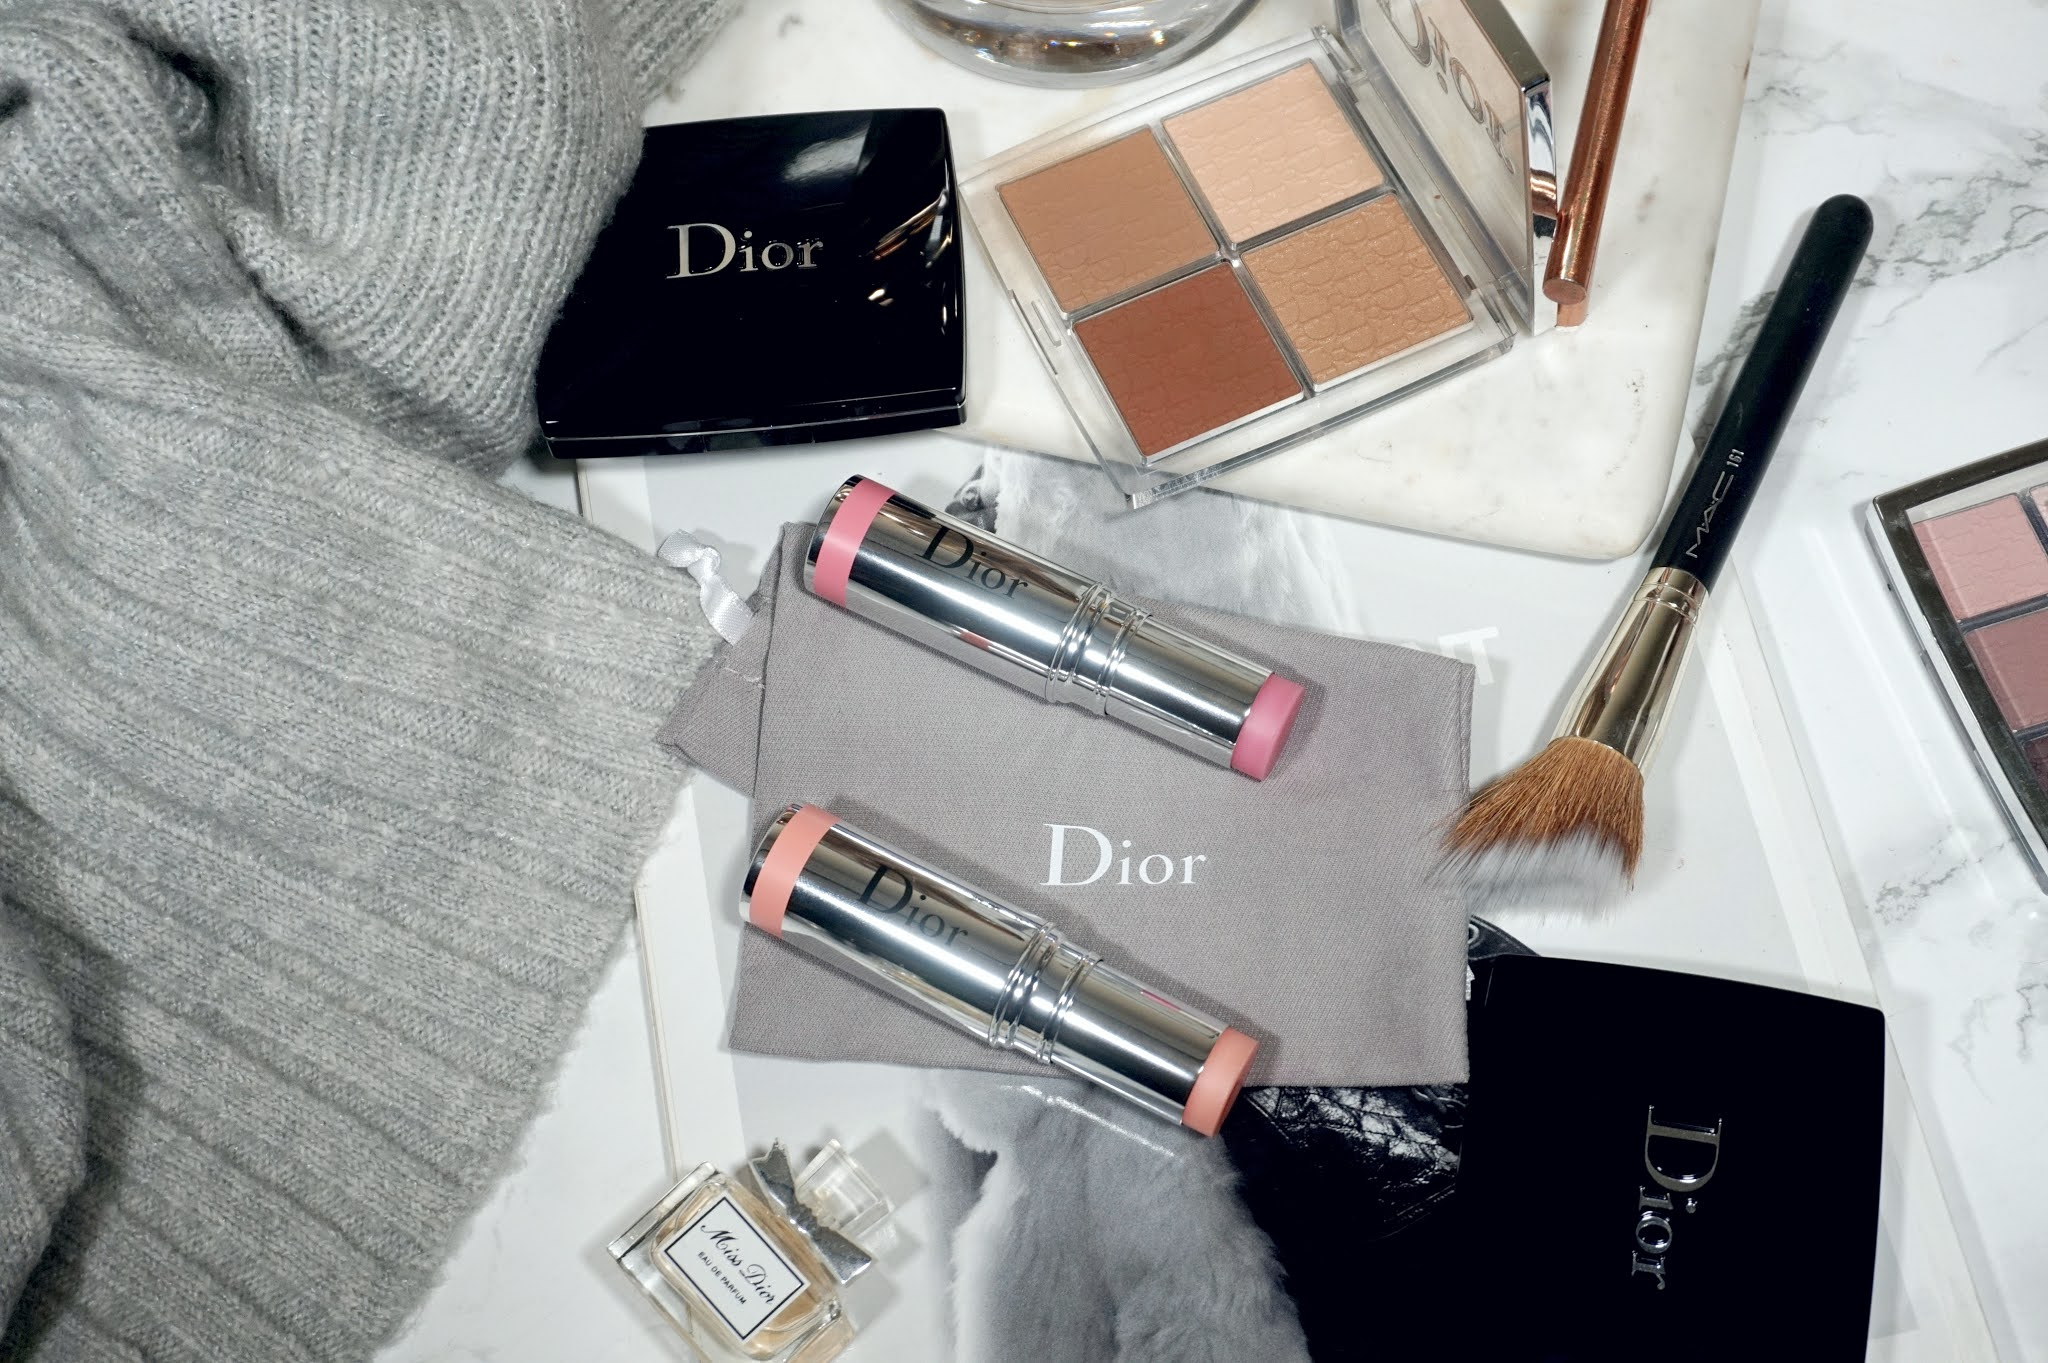 Dior DiorSkin Pure Glow Collection Stick Glow Blush Review and Swatches